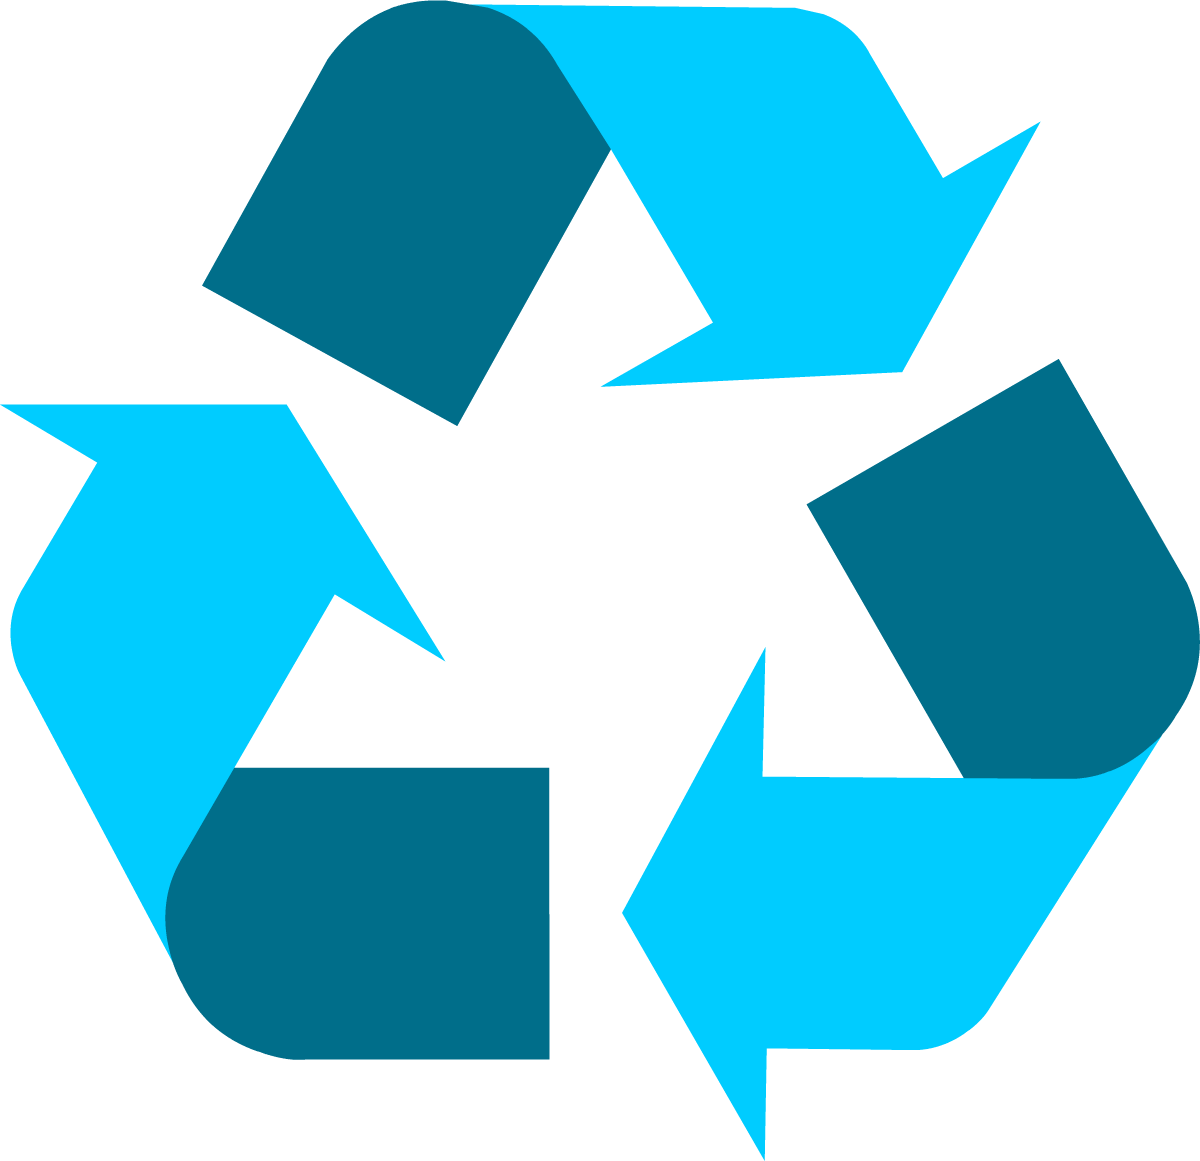 Download recycling symbol the. Clipart arrows water